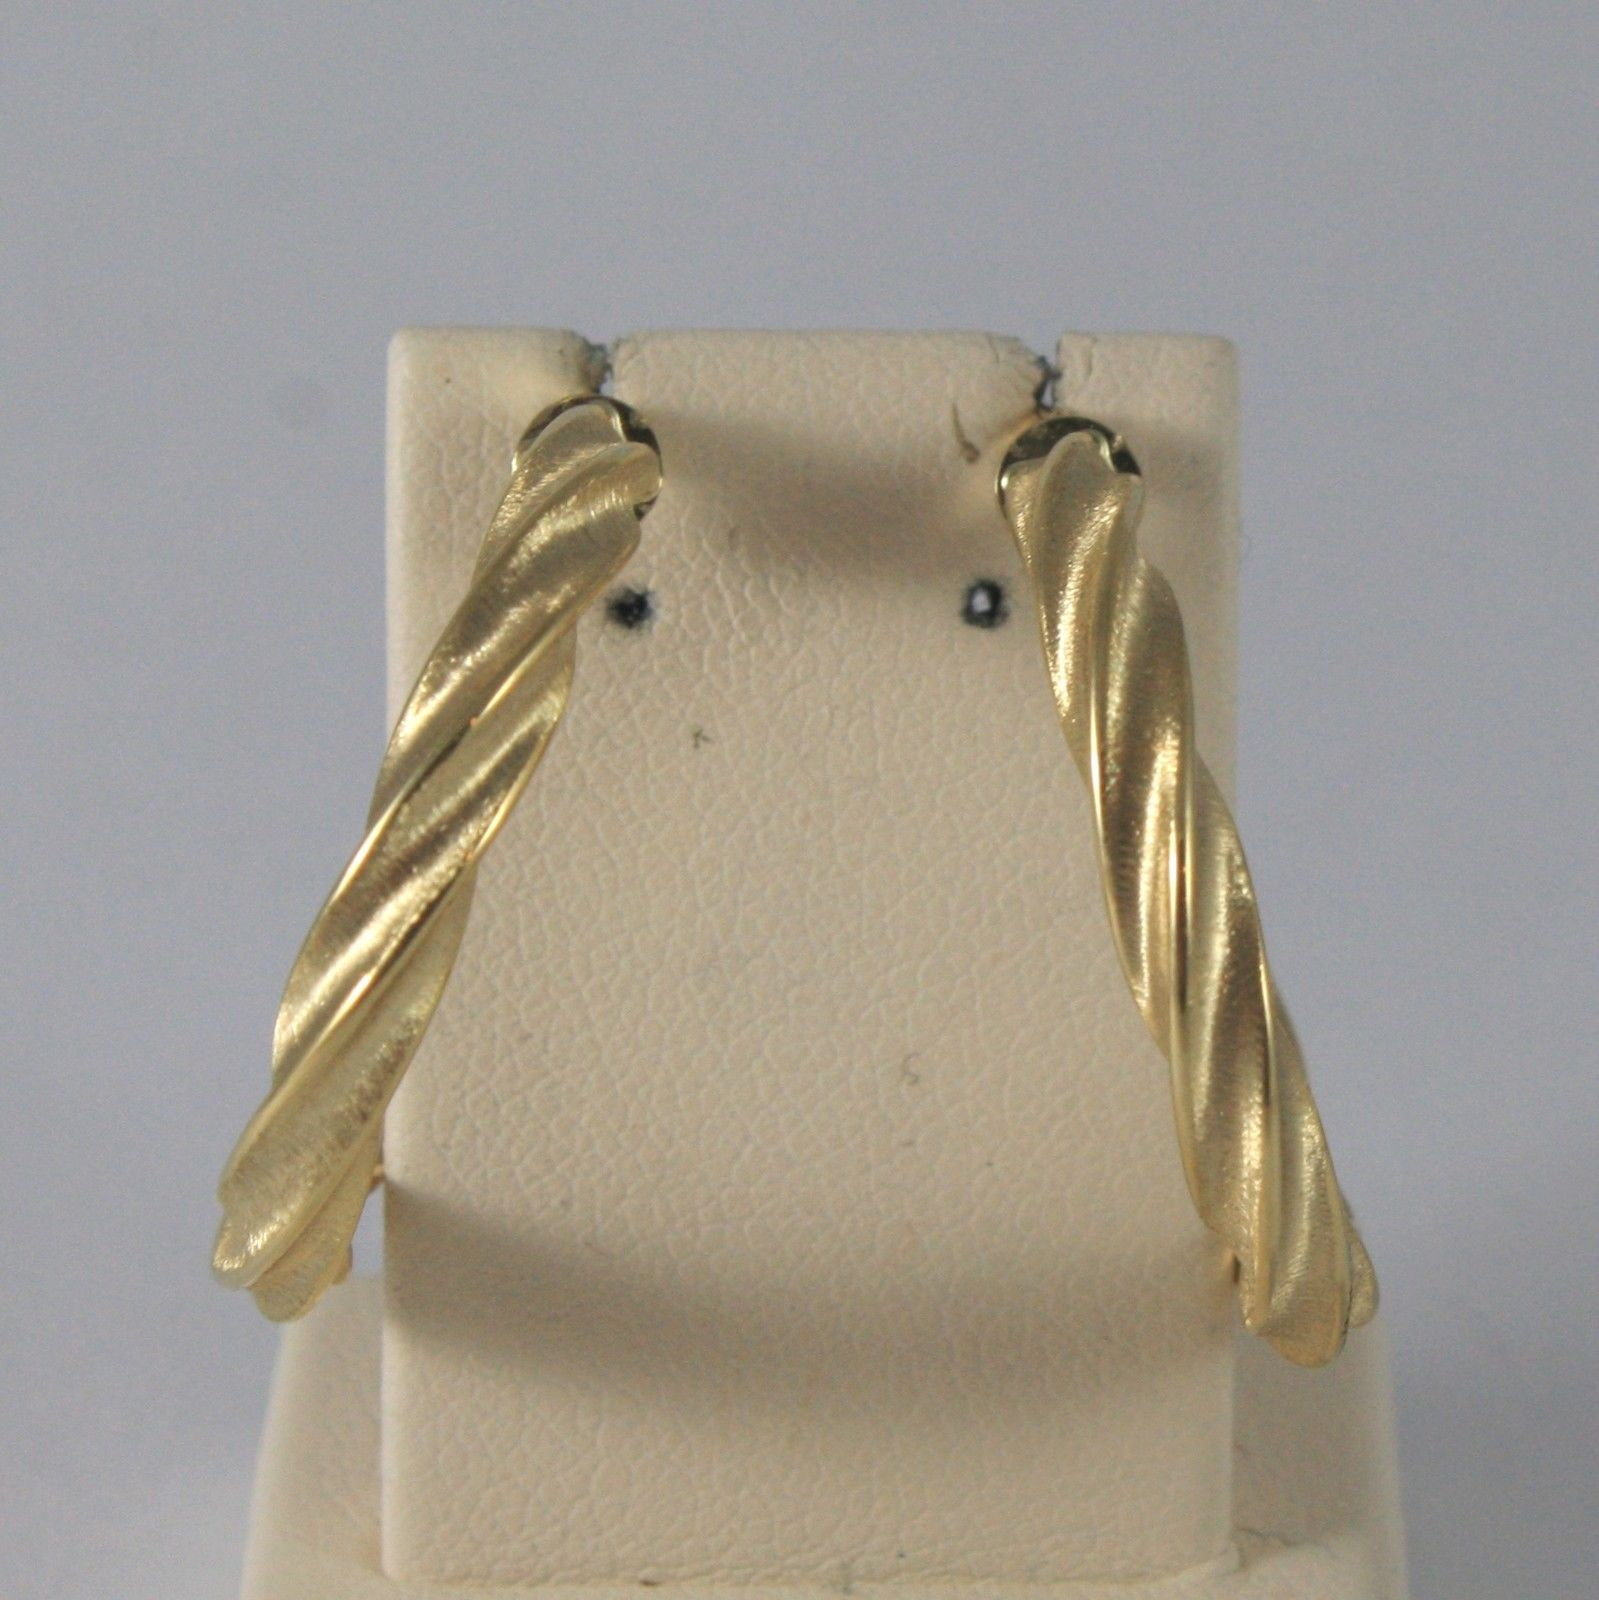 18K SOLID YELLOW GOLD EARRINGS WITH BRAID WORKED MADE IN ITALY 18KT